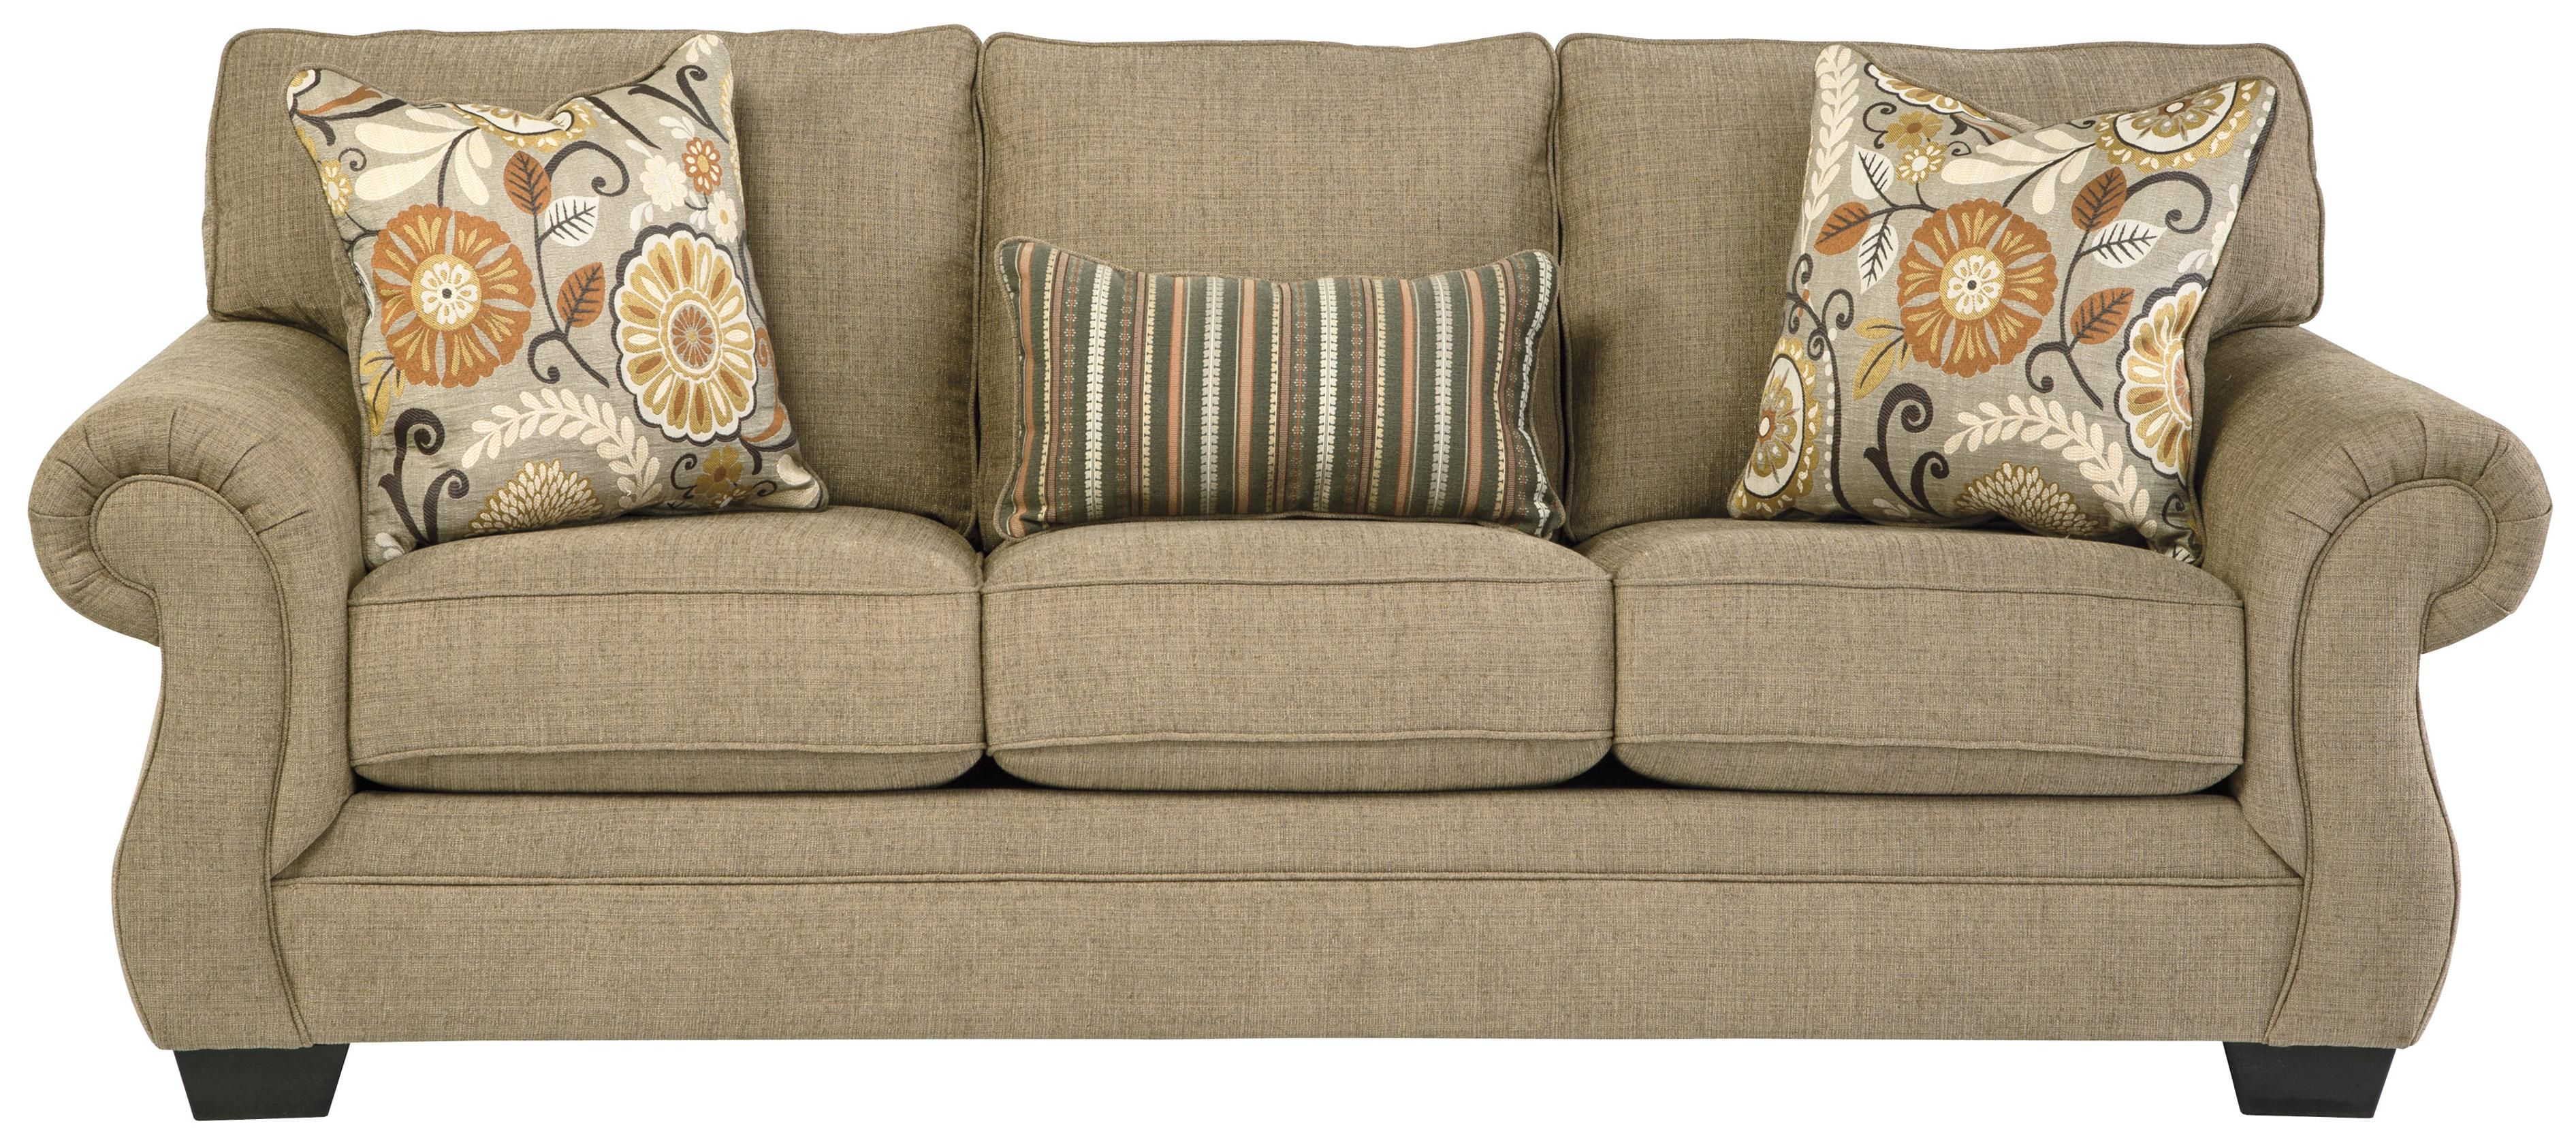 Best Tailya Sofa By Benchcraft Sofa 400 x 300